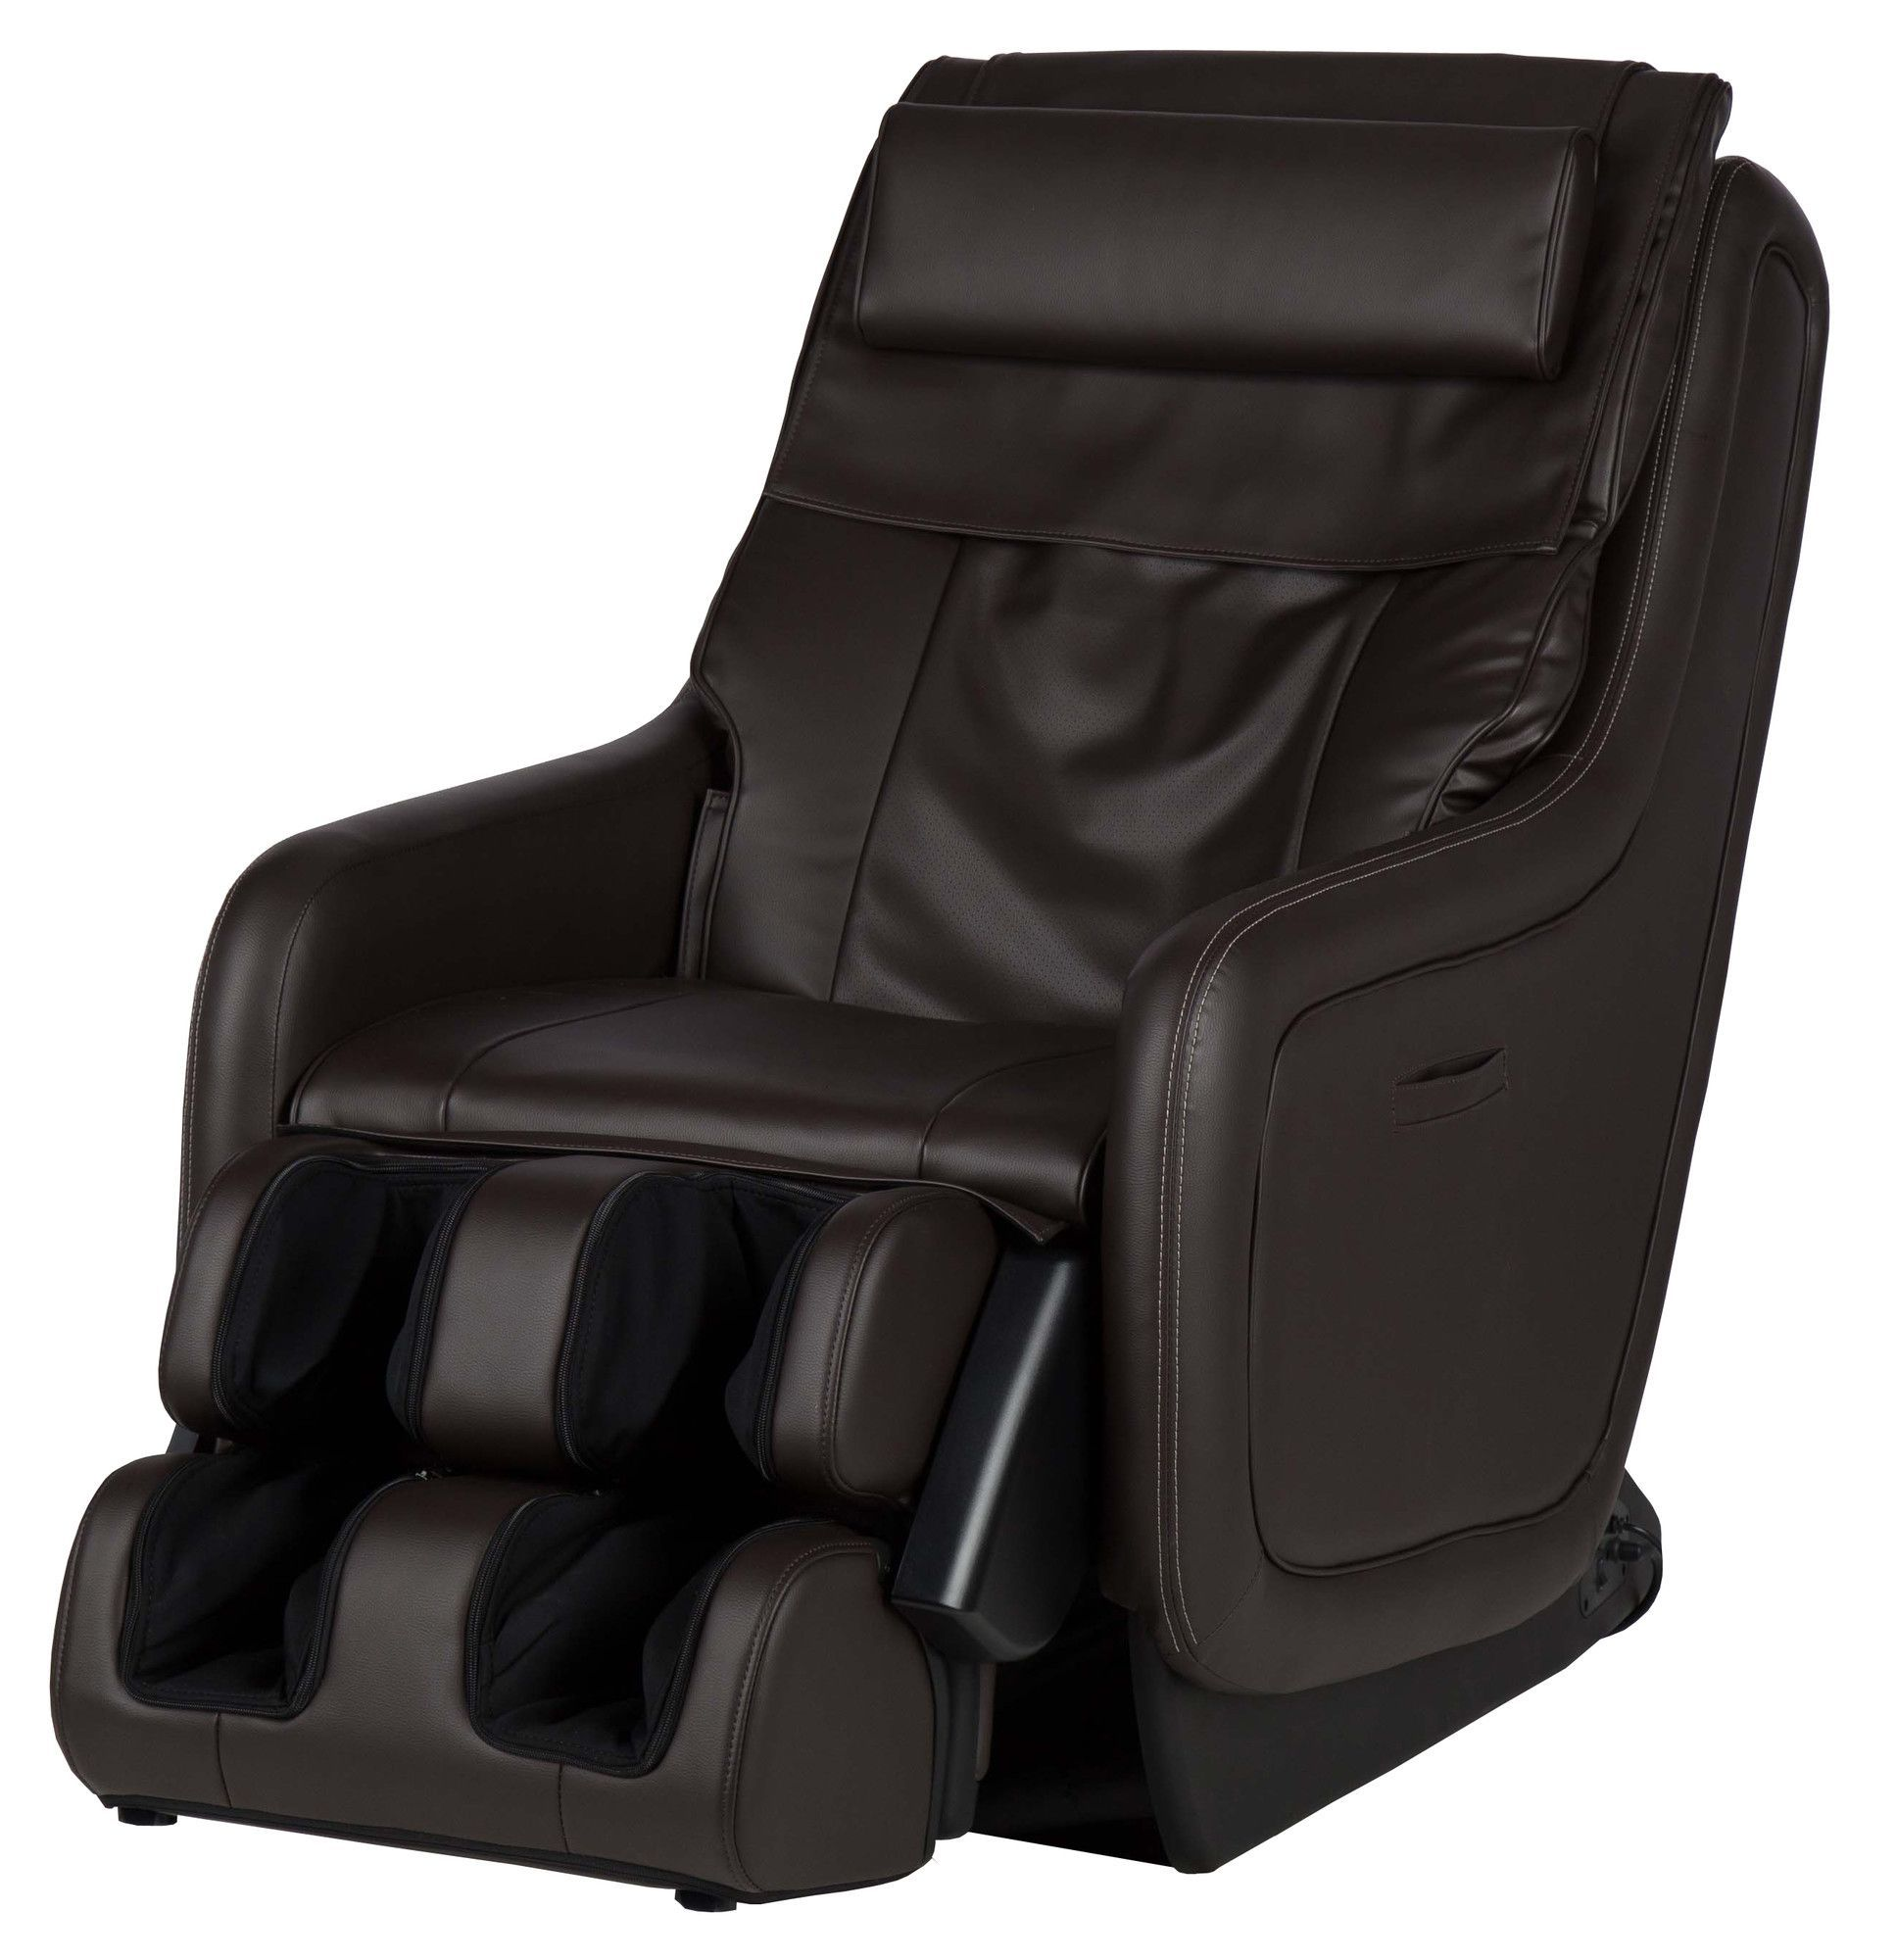 ZeroG® 5.0 Reclining Adjustable Width Heated Massage Chair